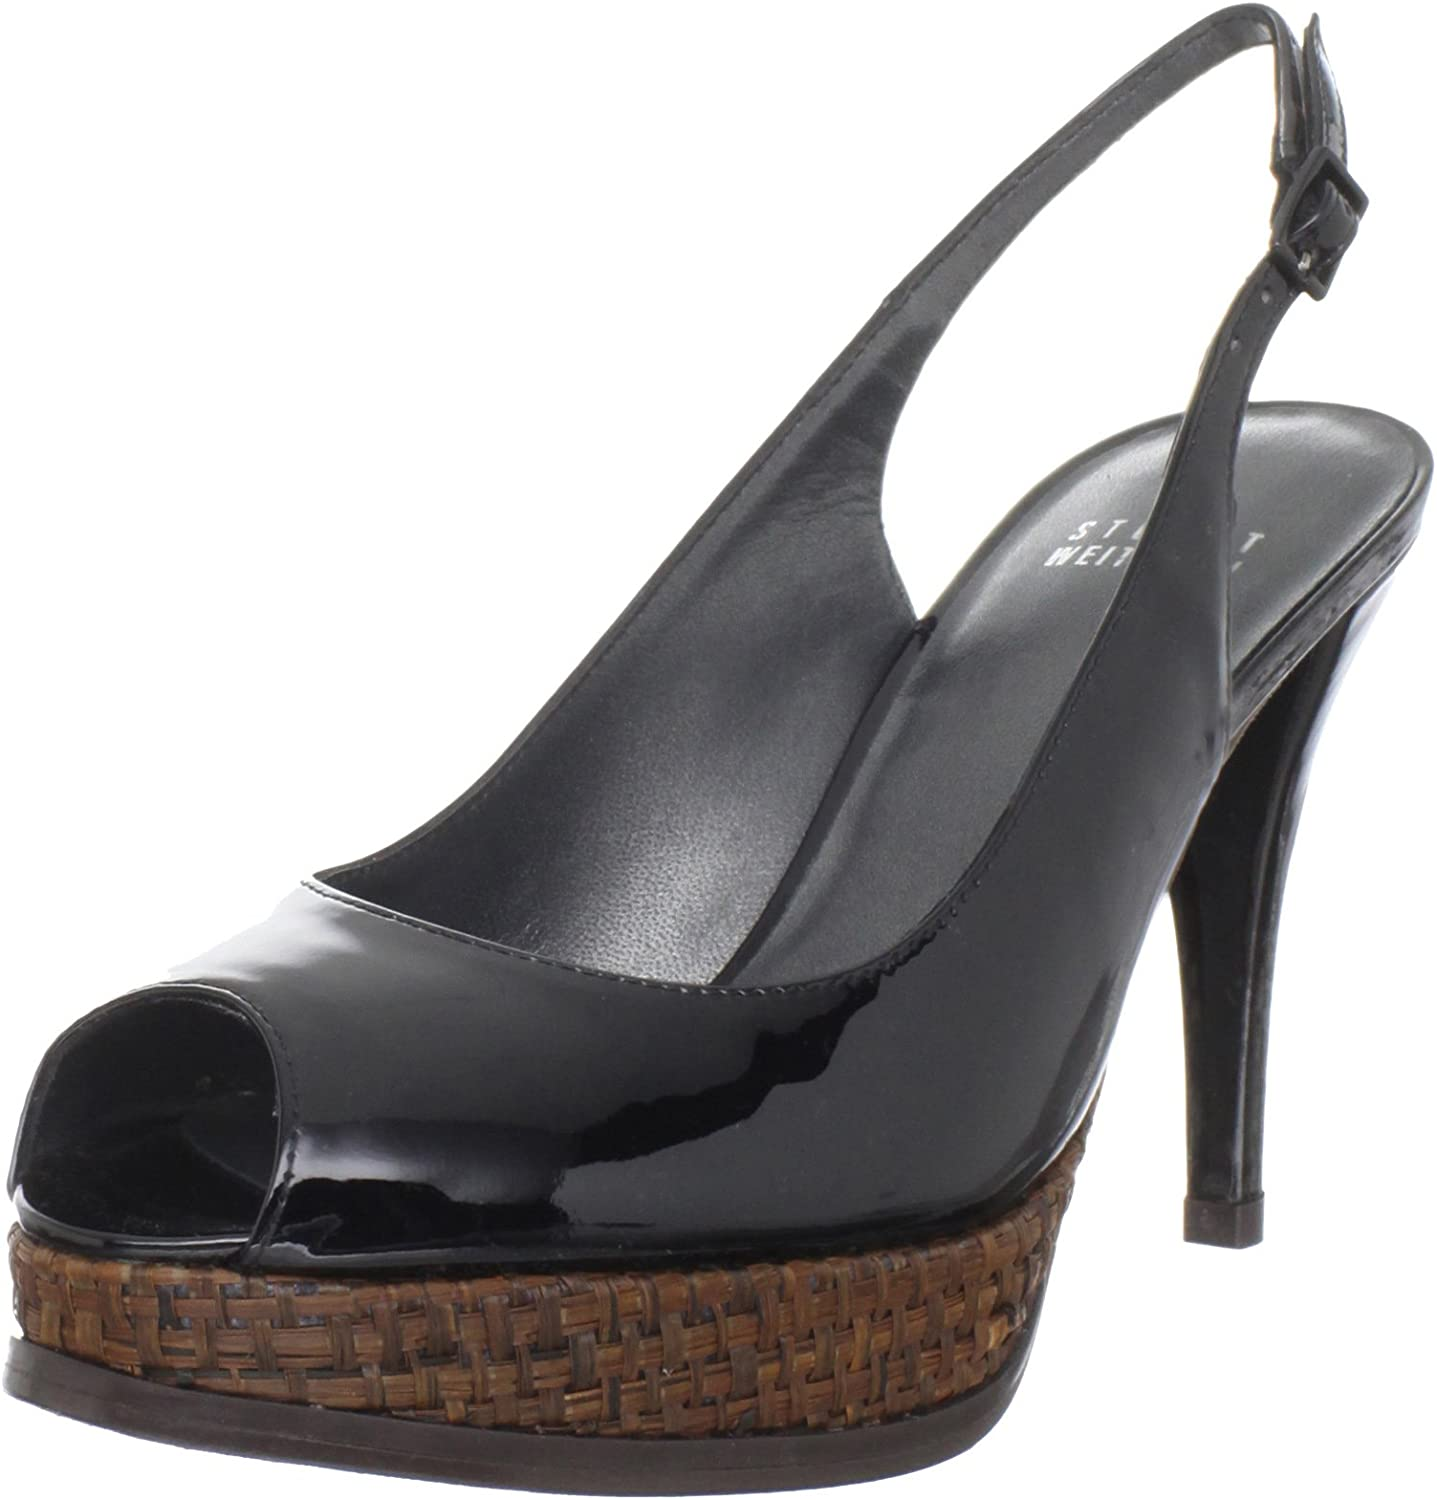 Shipping included Stuart OFFicial Weitzman Women's Pump Slinky